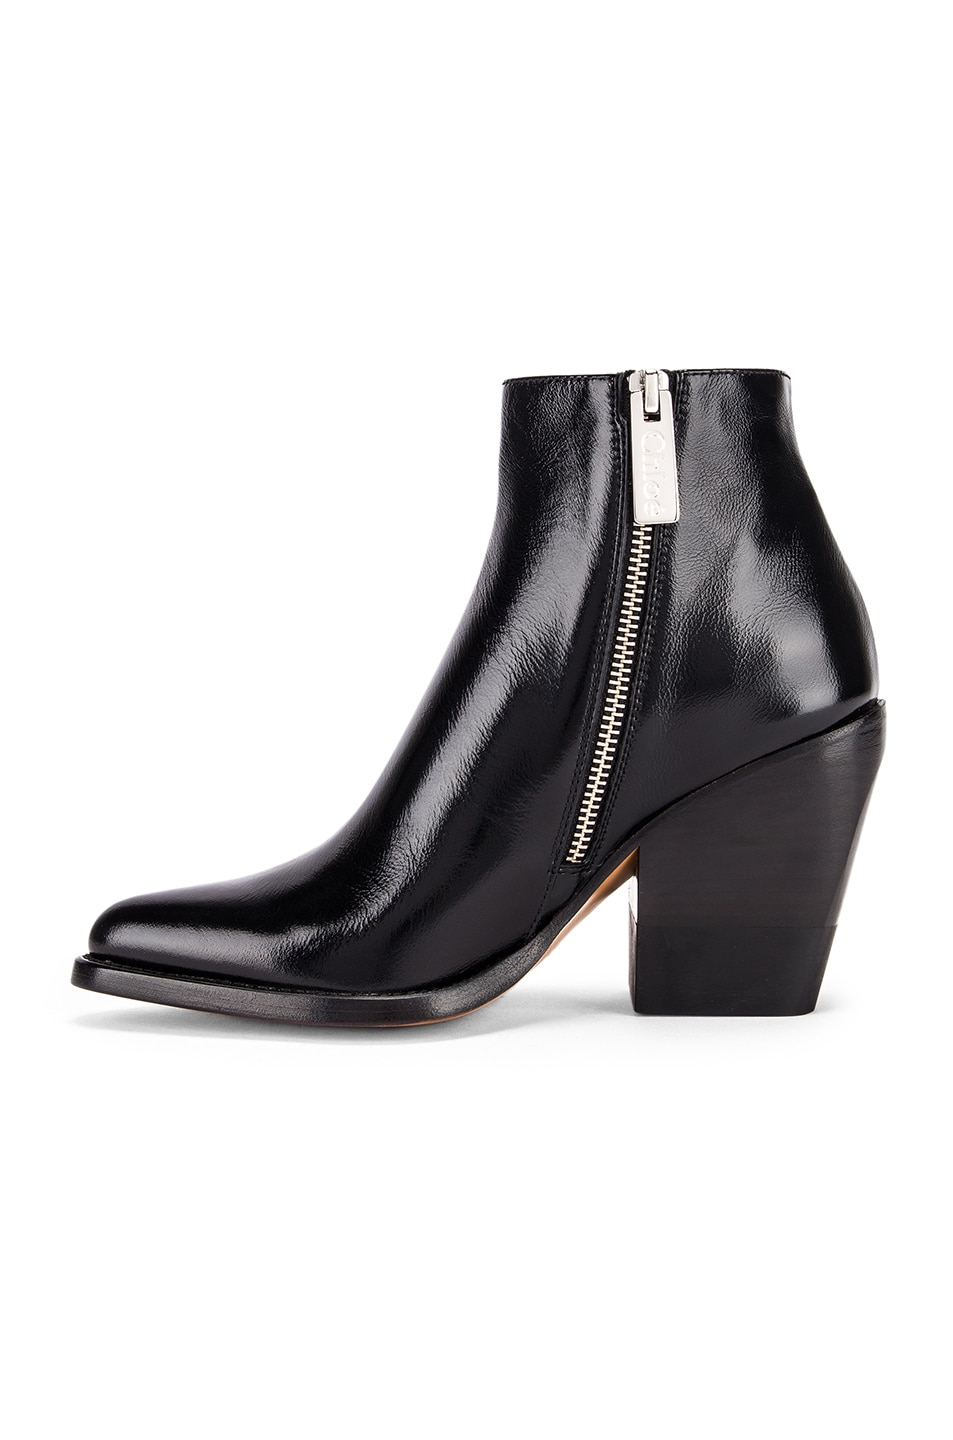 Image 5 of Chloe Rylee Ankle Boots in Black